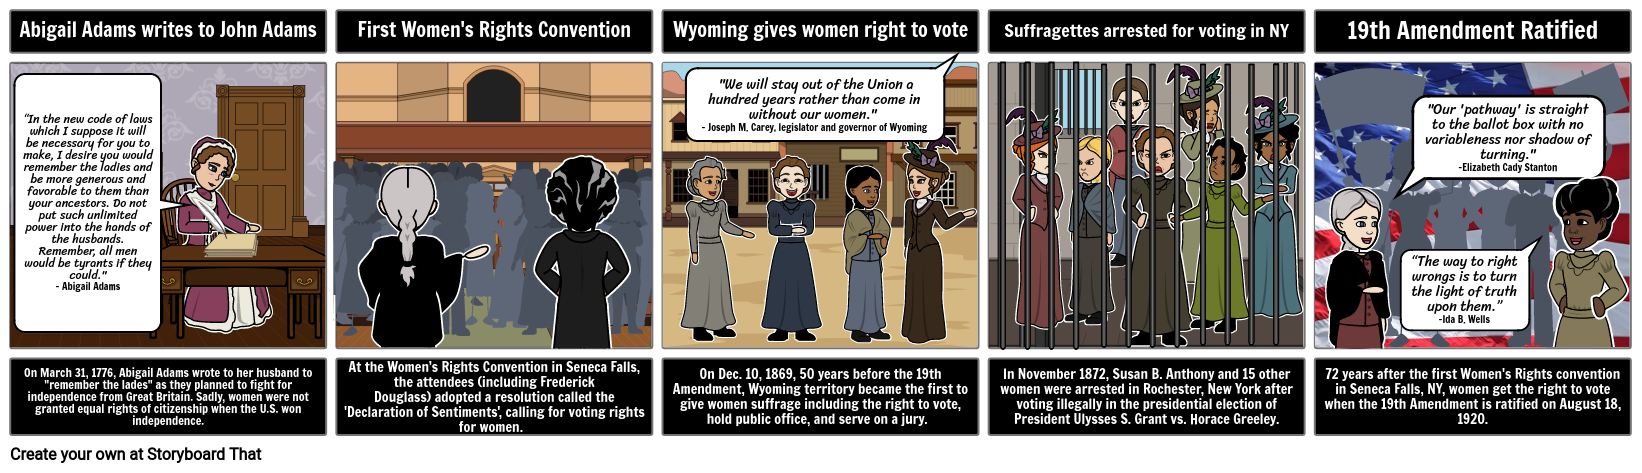 Road to the 19th Amendment: Women's Right to Vote